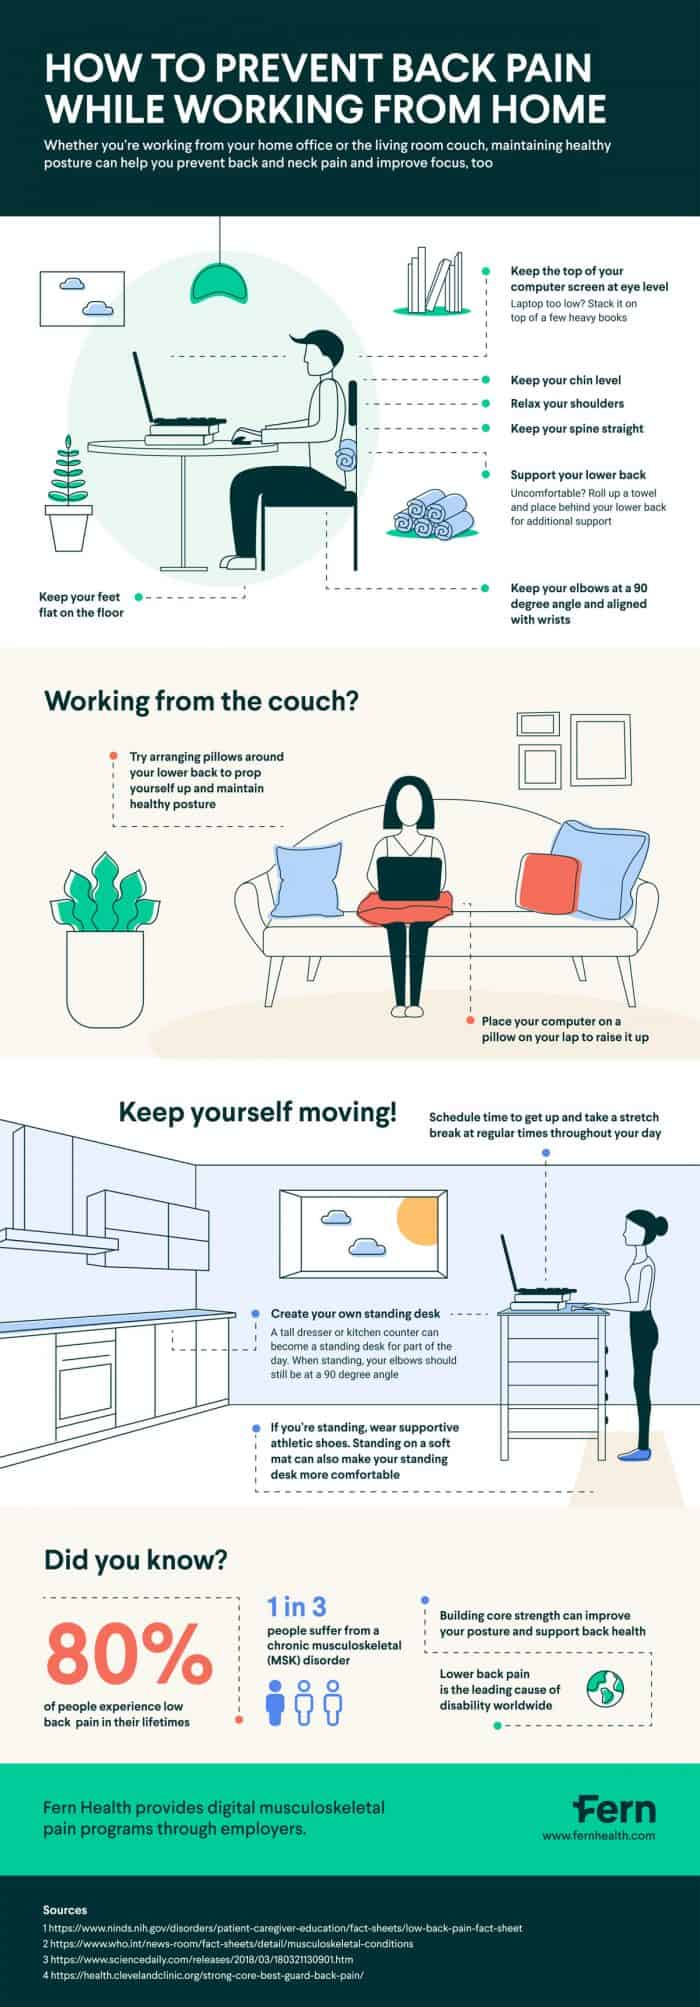 tips to prevent back pain while working from home